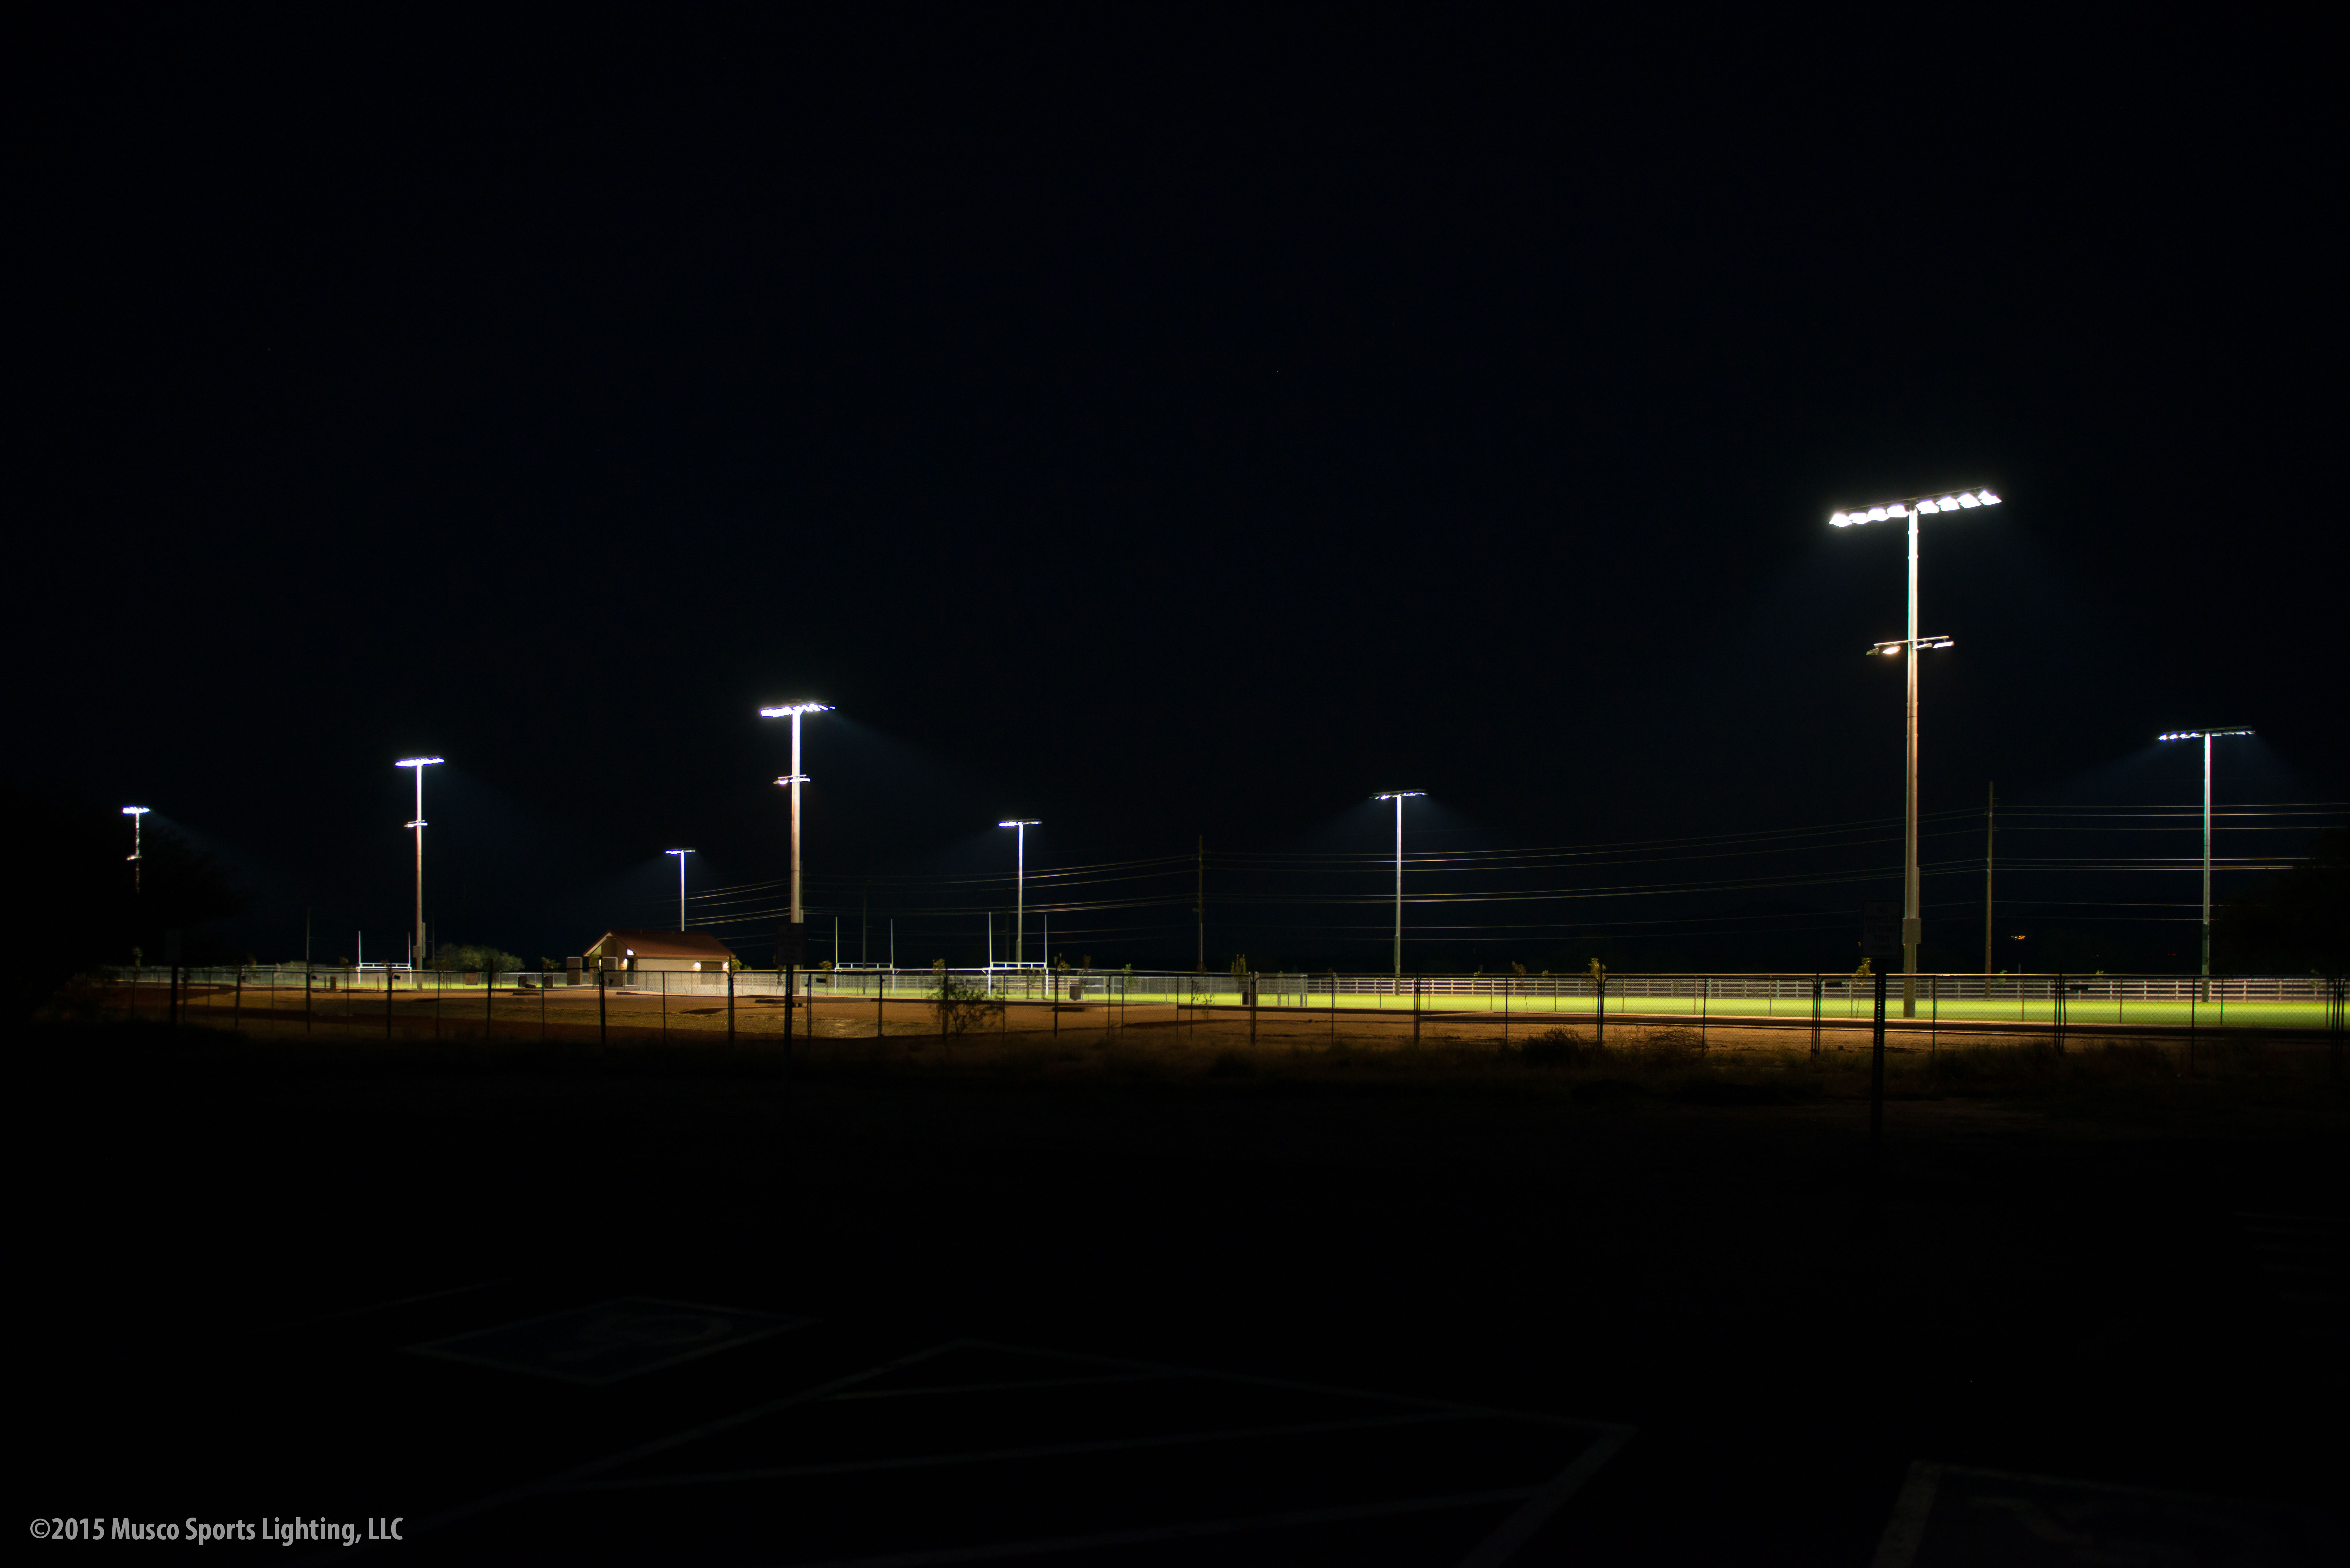 IDA Announces Criteria for Community-Friendly Outdoor Sports Lighting Image